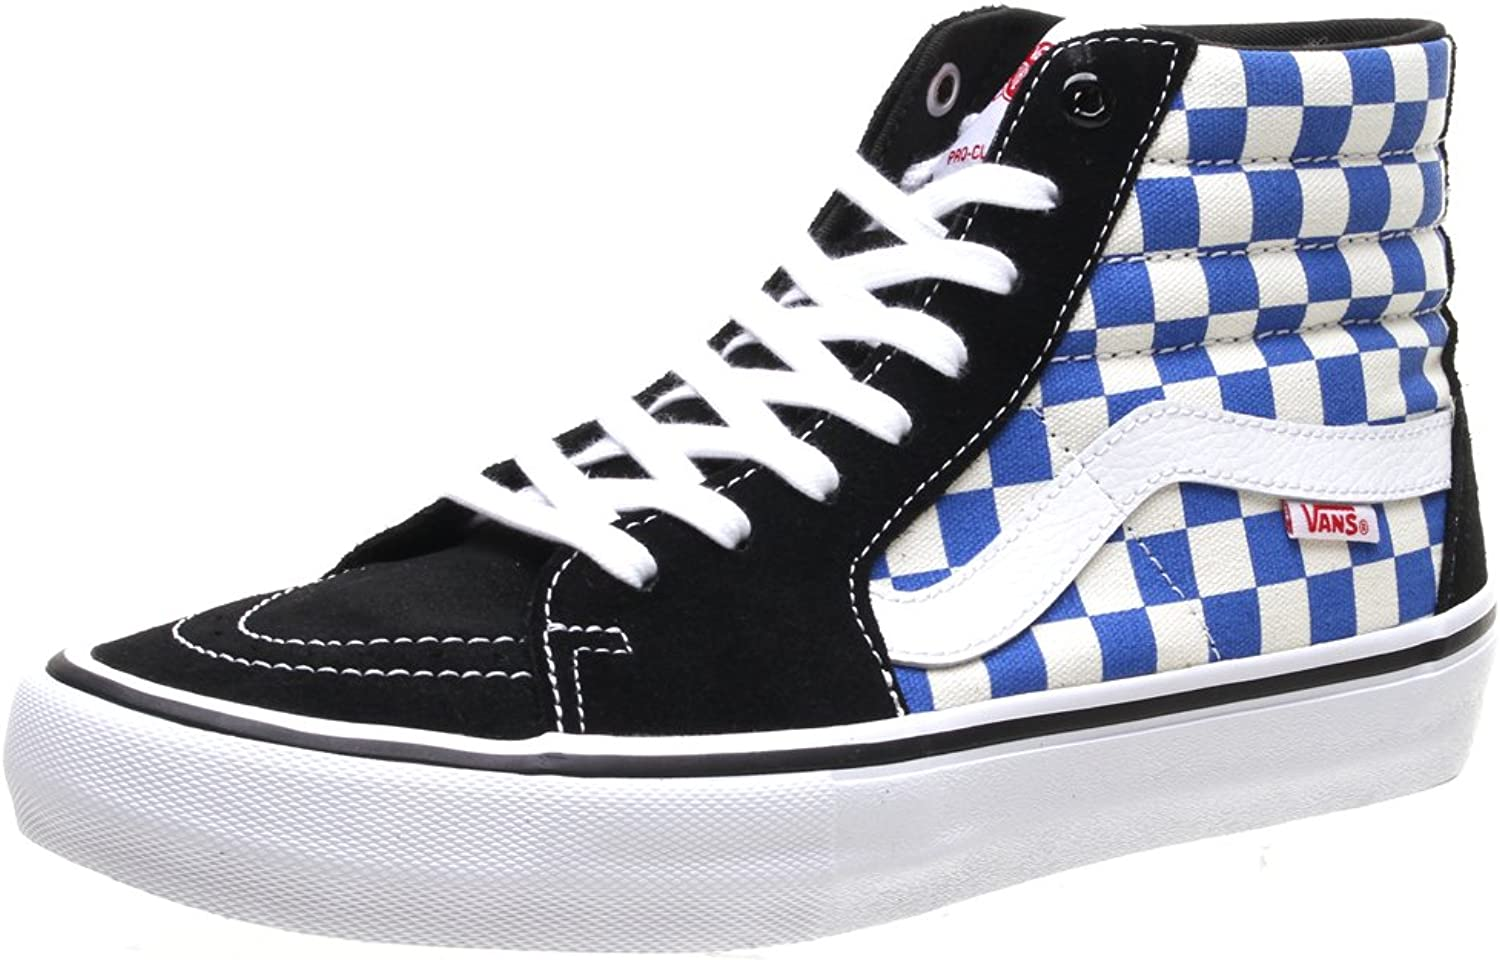 Vans SK8 Hi Pro (Checkerboard) Black Victoria bluee shoes VA347TQ1L